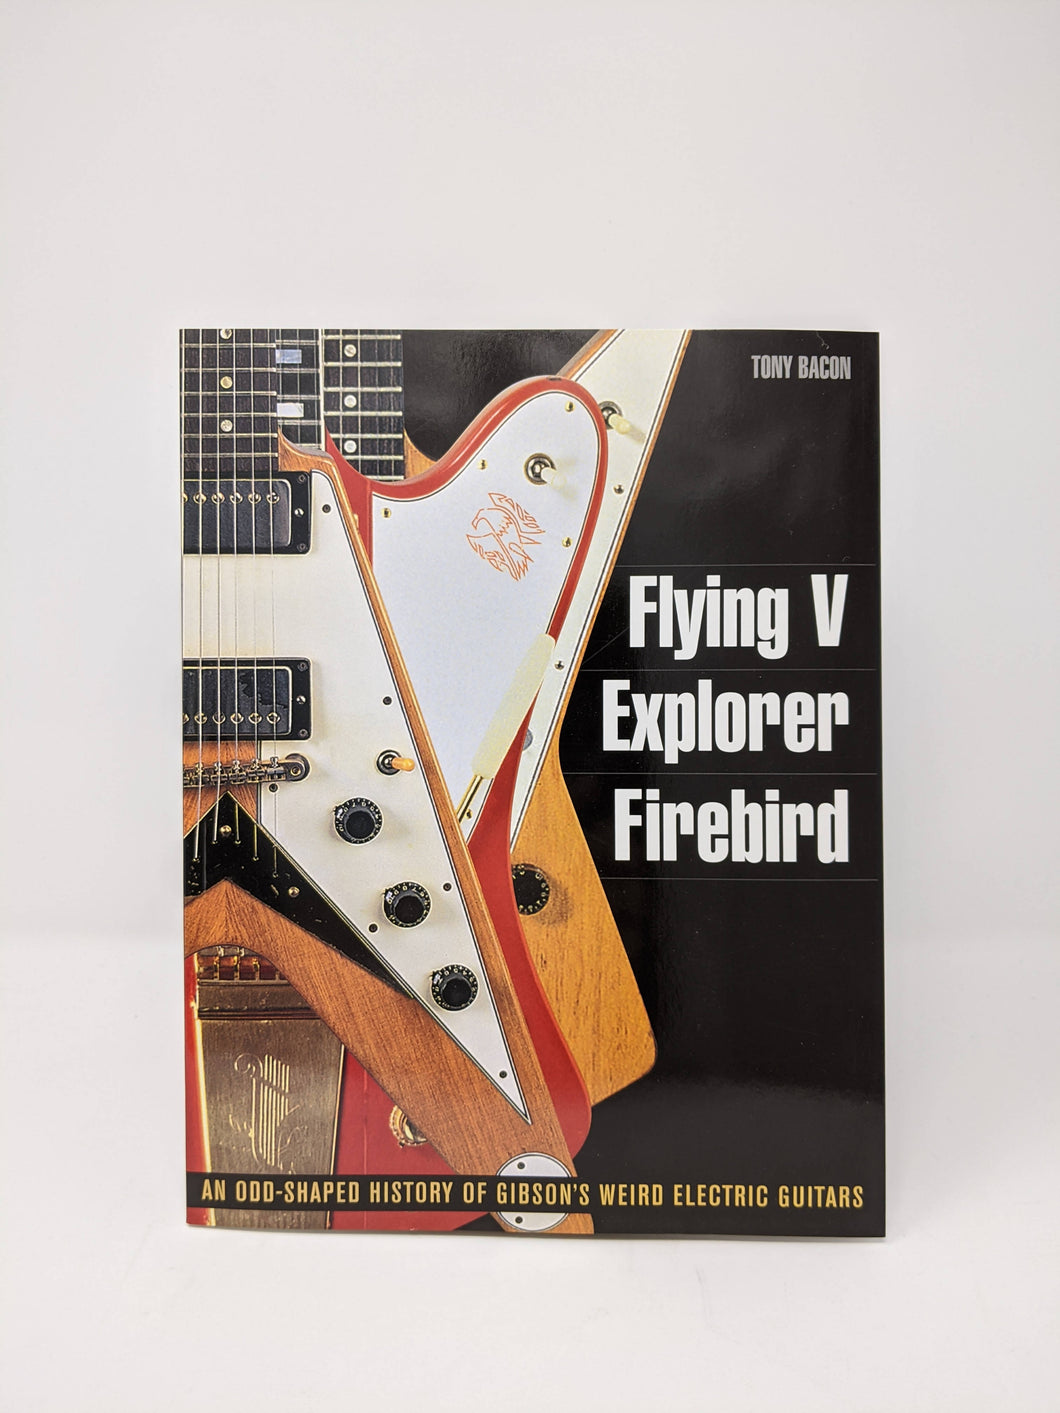 SALE Flying V Explorer Firebird- An odd shaped history of gibson's weird electric guitars by Tony Bacon